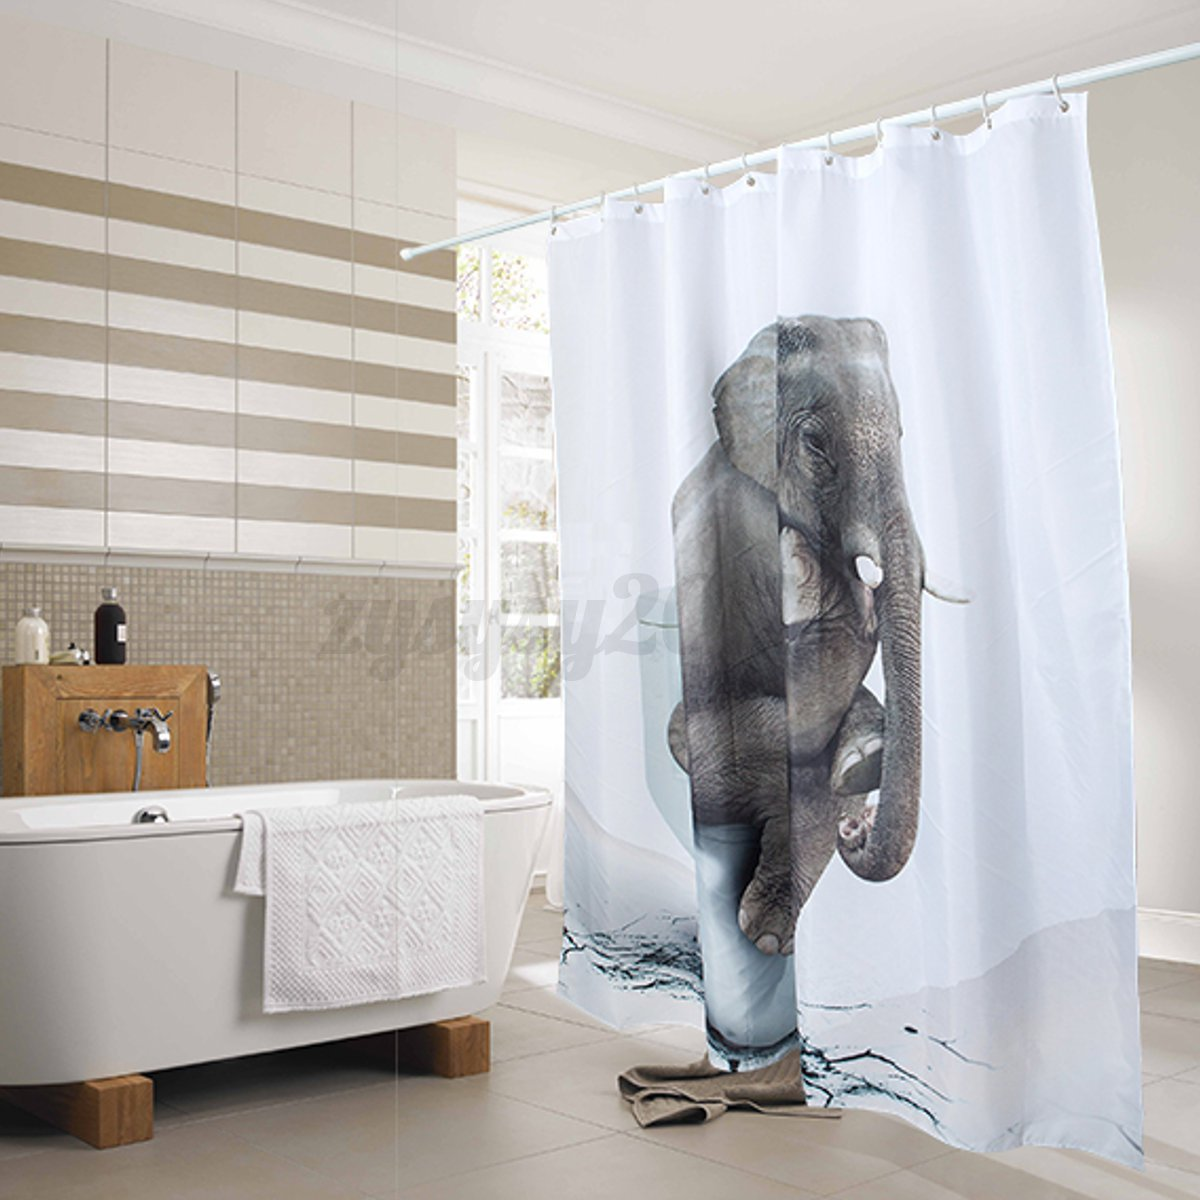 Elephant bathroom